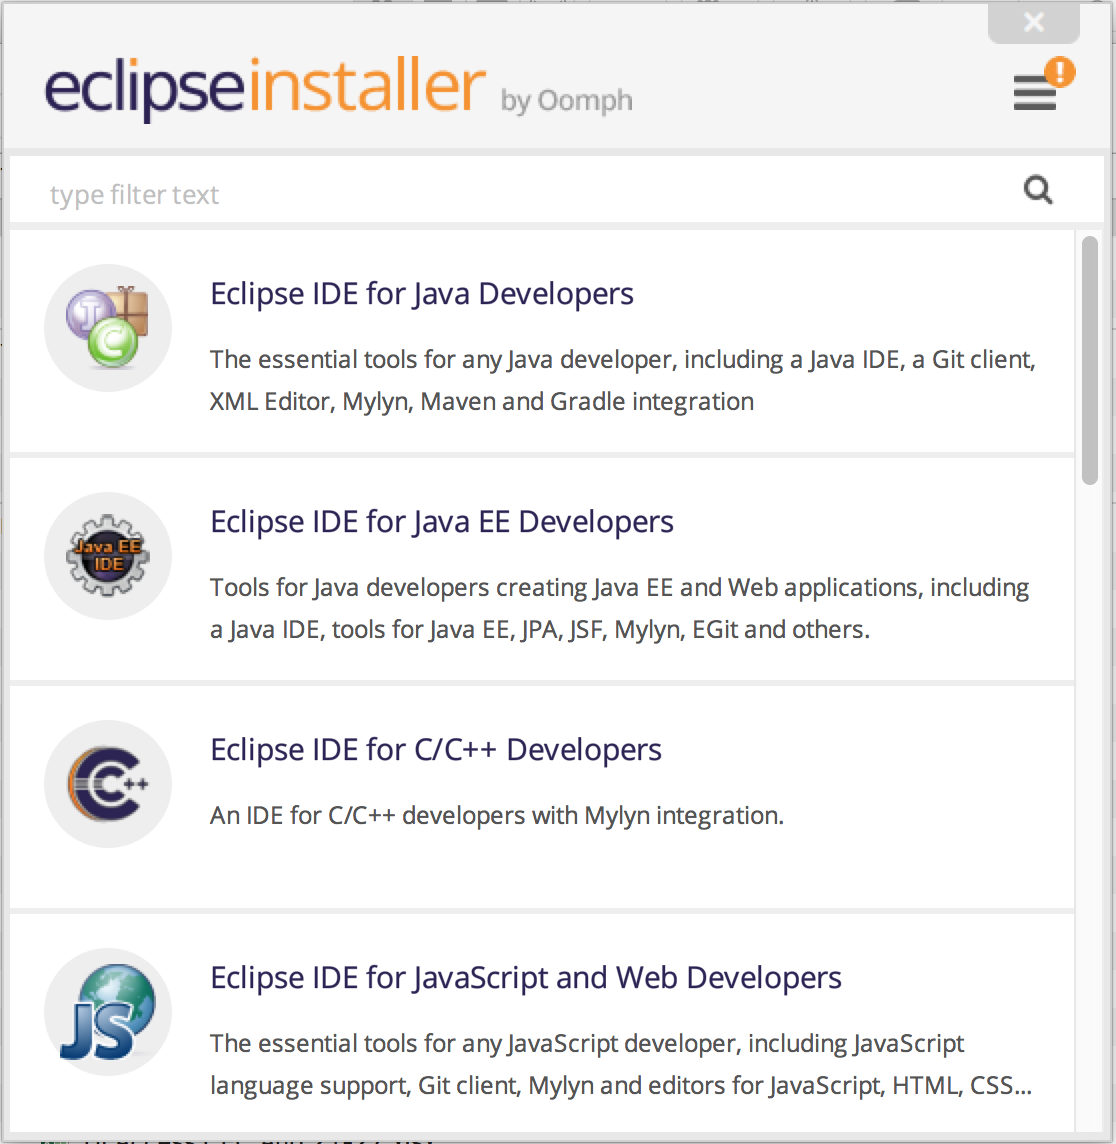 How to install eclipse ide core java and sdet training step 4 run eclipse installer baditri Choice Image